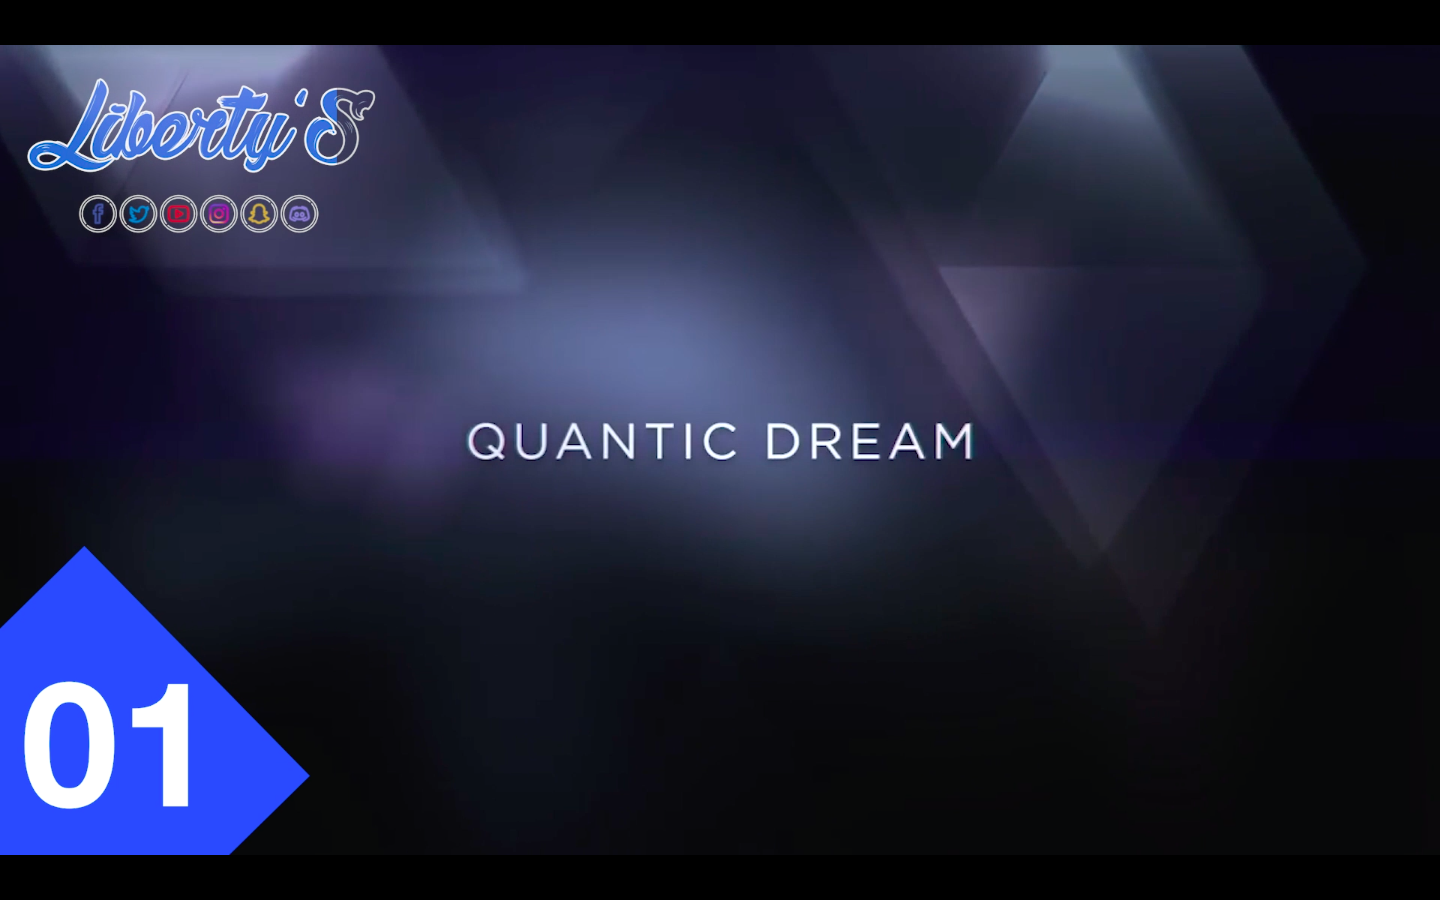 Top 10 Studios - 01 Quantic Dream